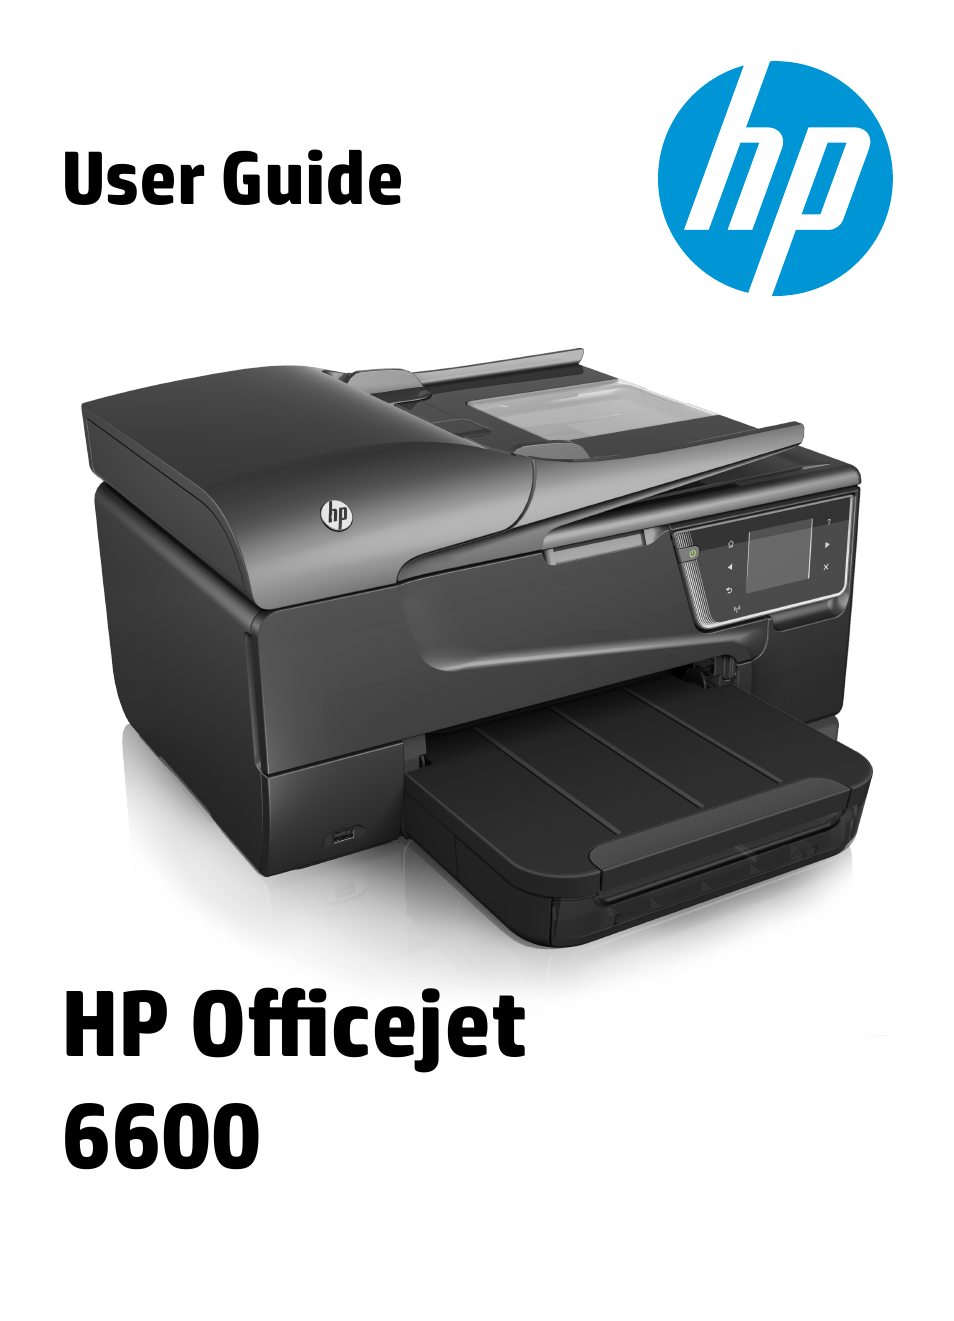 hp inkjet printer manual open source user manual u2022 rh dramatic varieties com hp deskjet 3050 manual wireless setup hp deskjet 3050 manual pdf